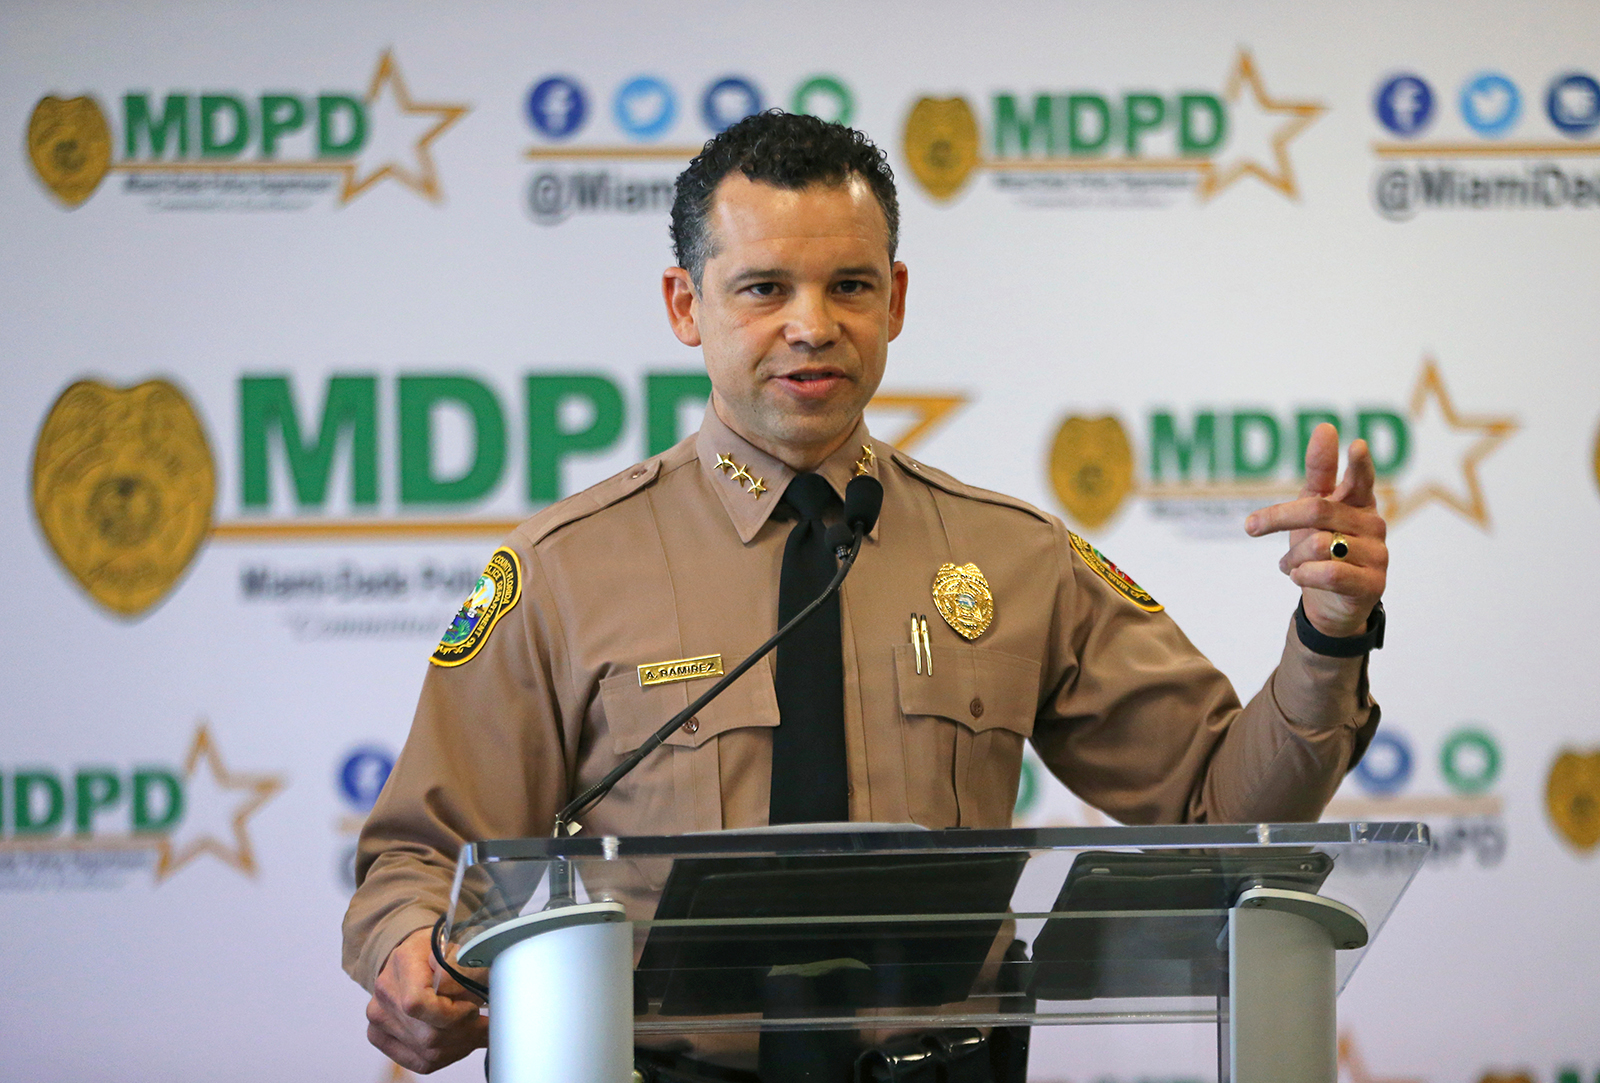 Miami-Dade Police Department director Alfredo Ramirez III talks during the press conference at Miami-Dade Police Department Headquarters in Miami, on January 8.